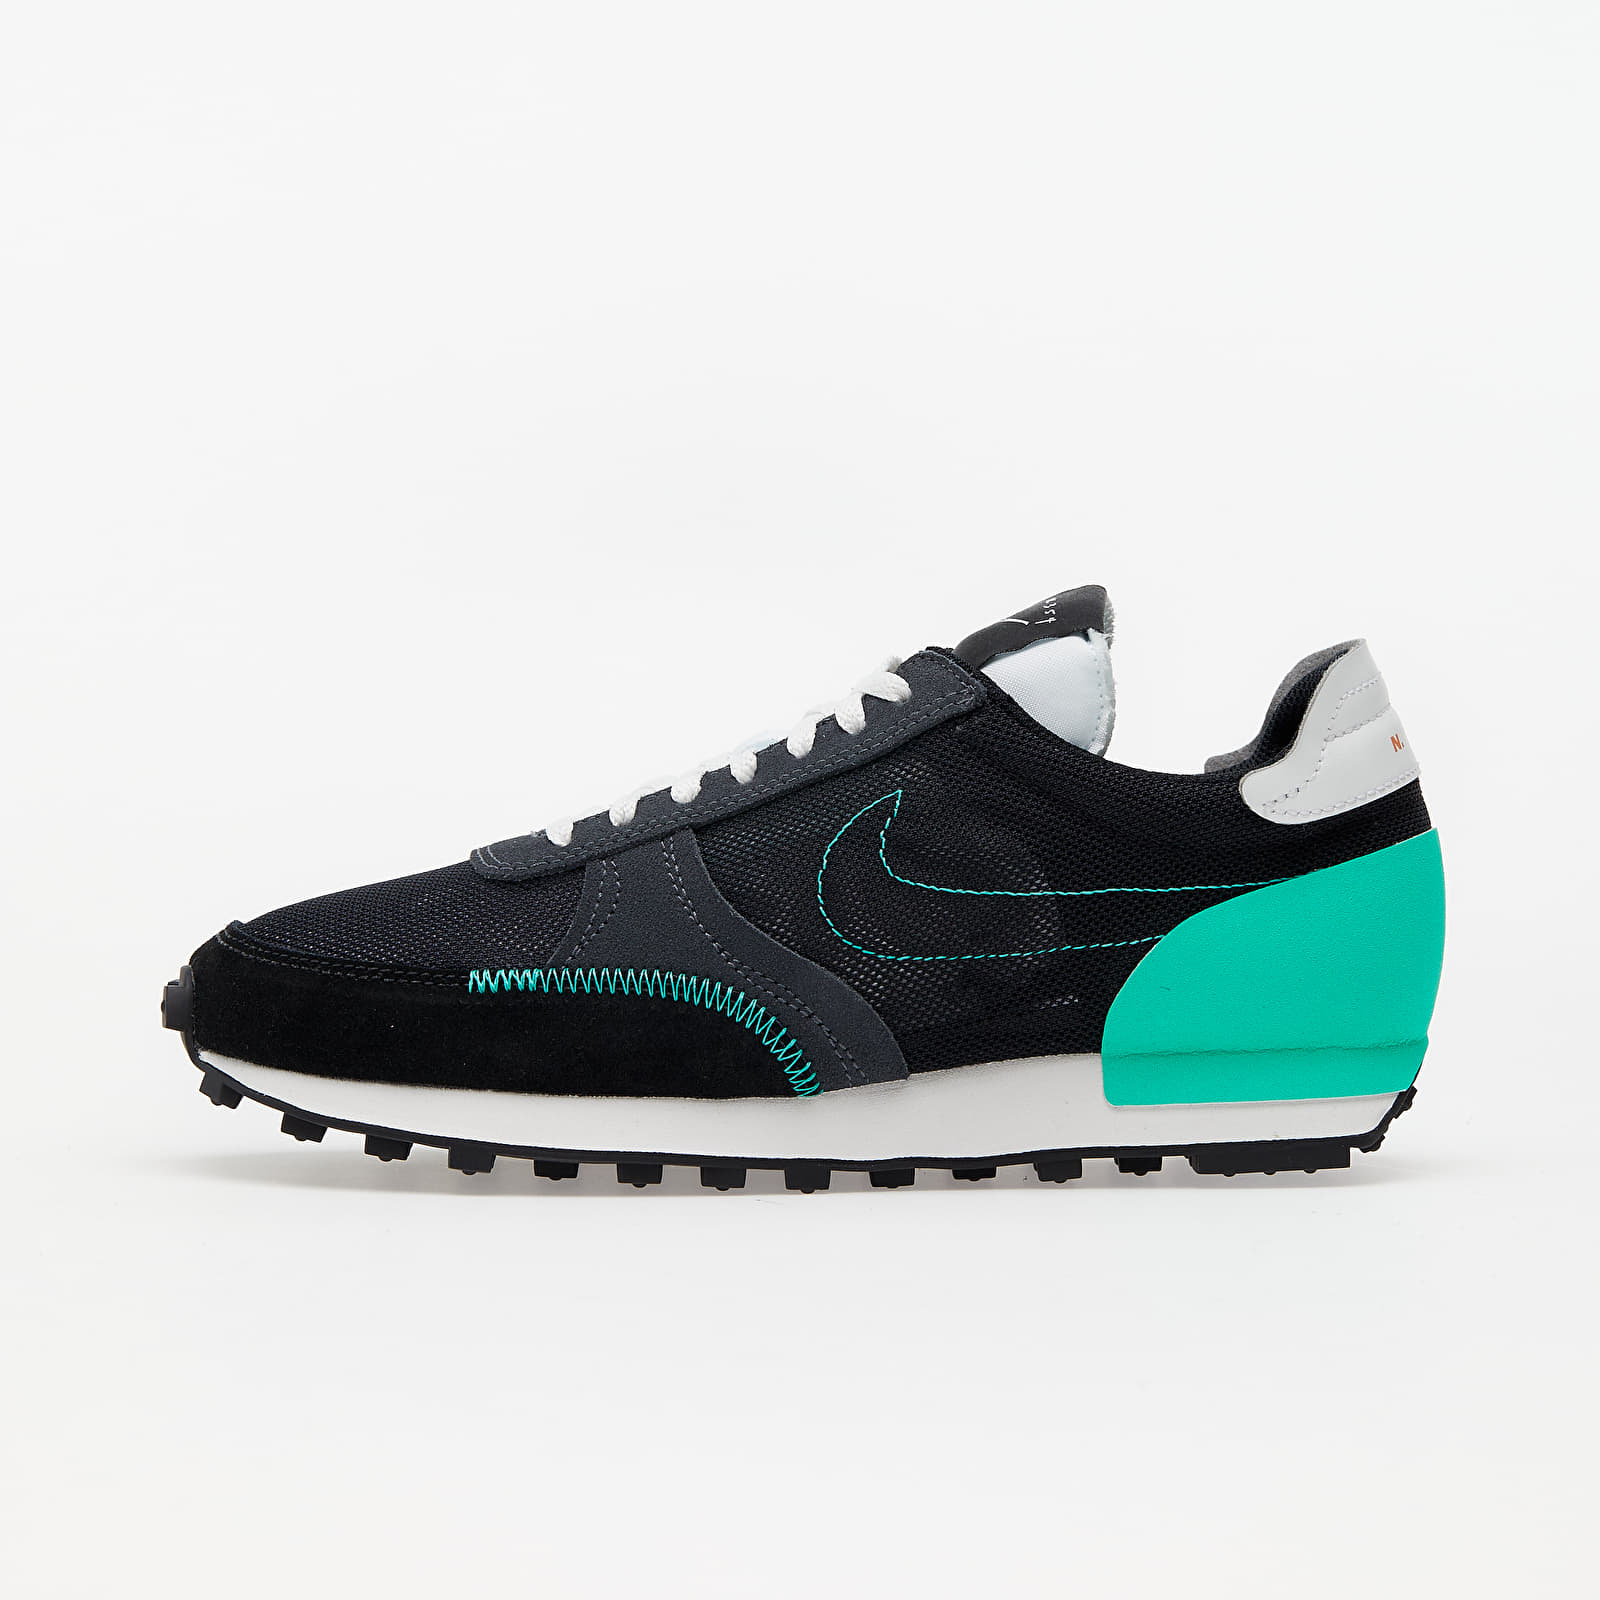 Nike Daybreak-Type Black/ Menta-Summit White CJ1156-001